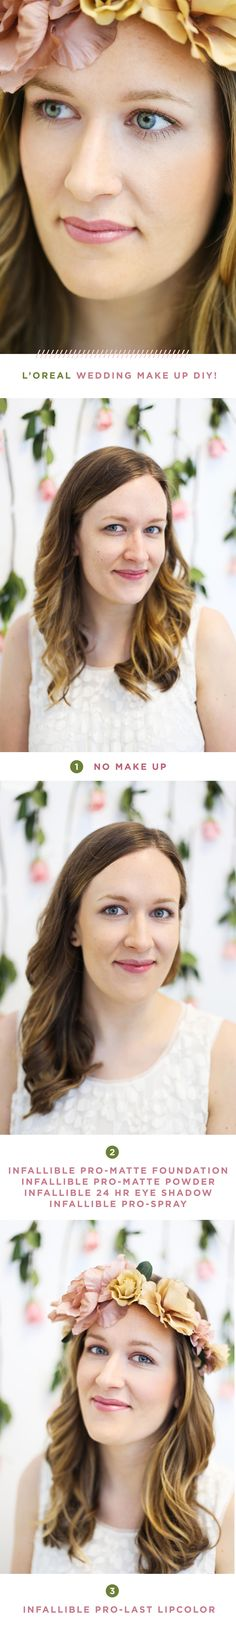 Quick and easy steps to get a wedding look!